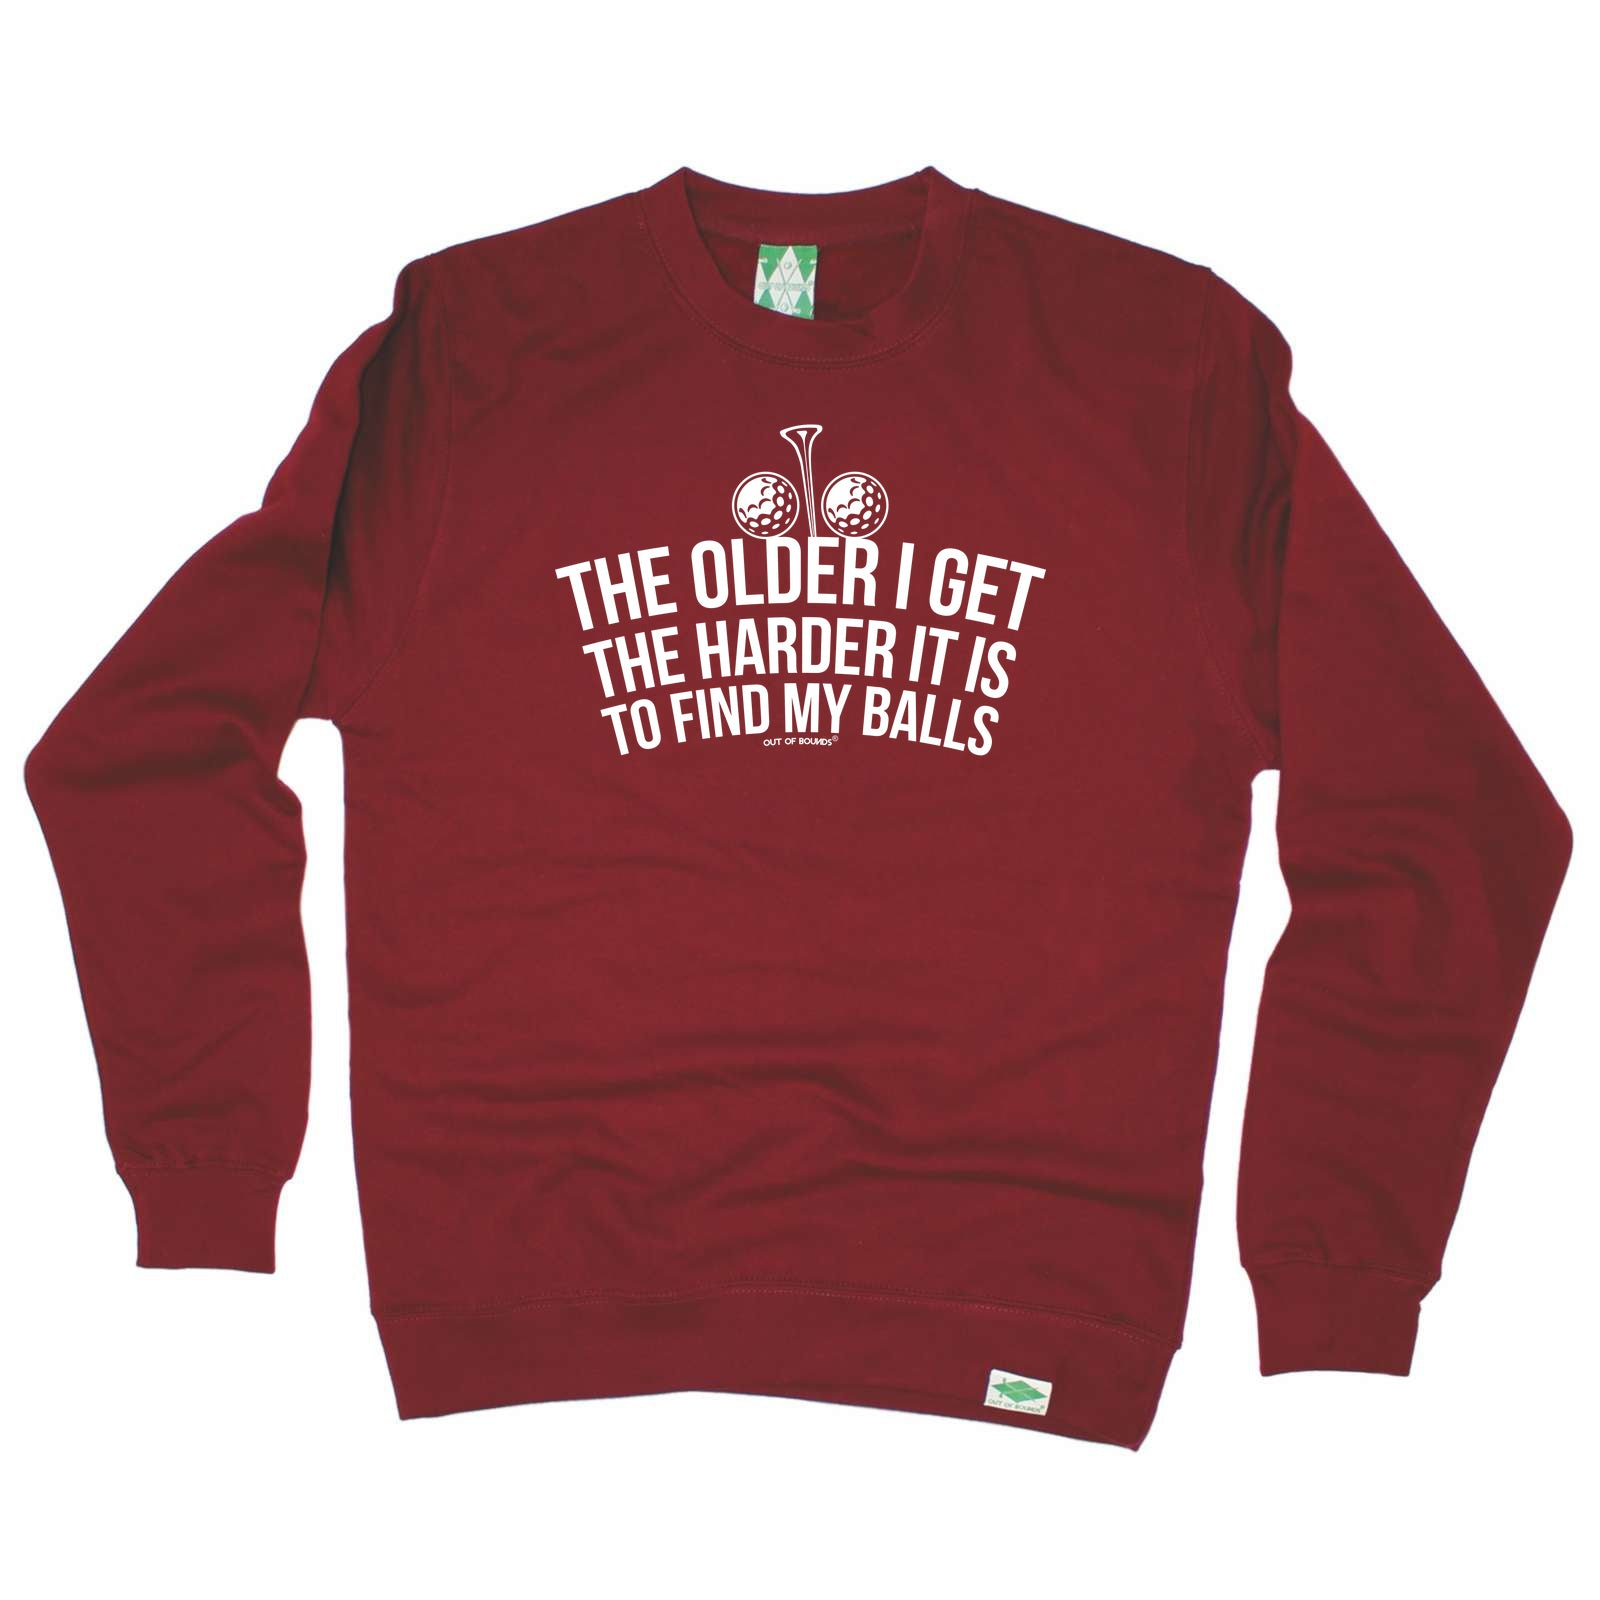 Buy Out Of Bounds Golf Sweatshirt - The Older I Get The Harder It Is To  Find My Balls - Sweater Jumper at 123t T-Shirts & Hoodies for only £15 97